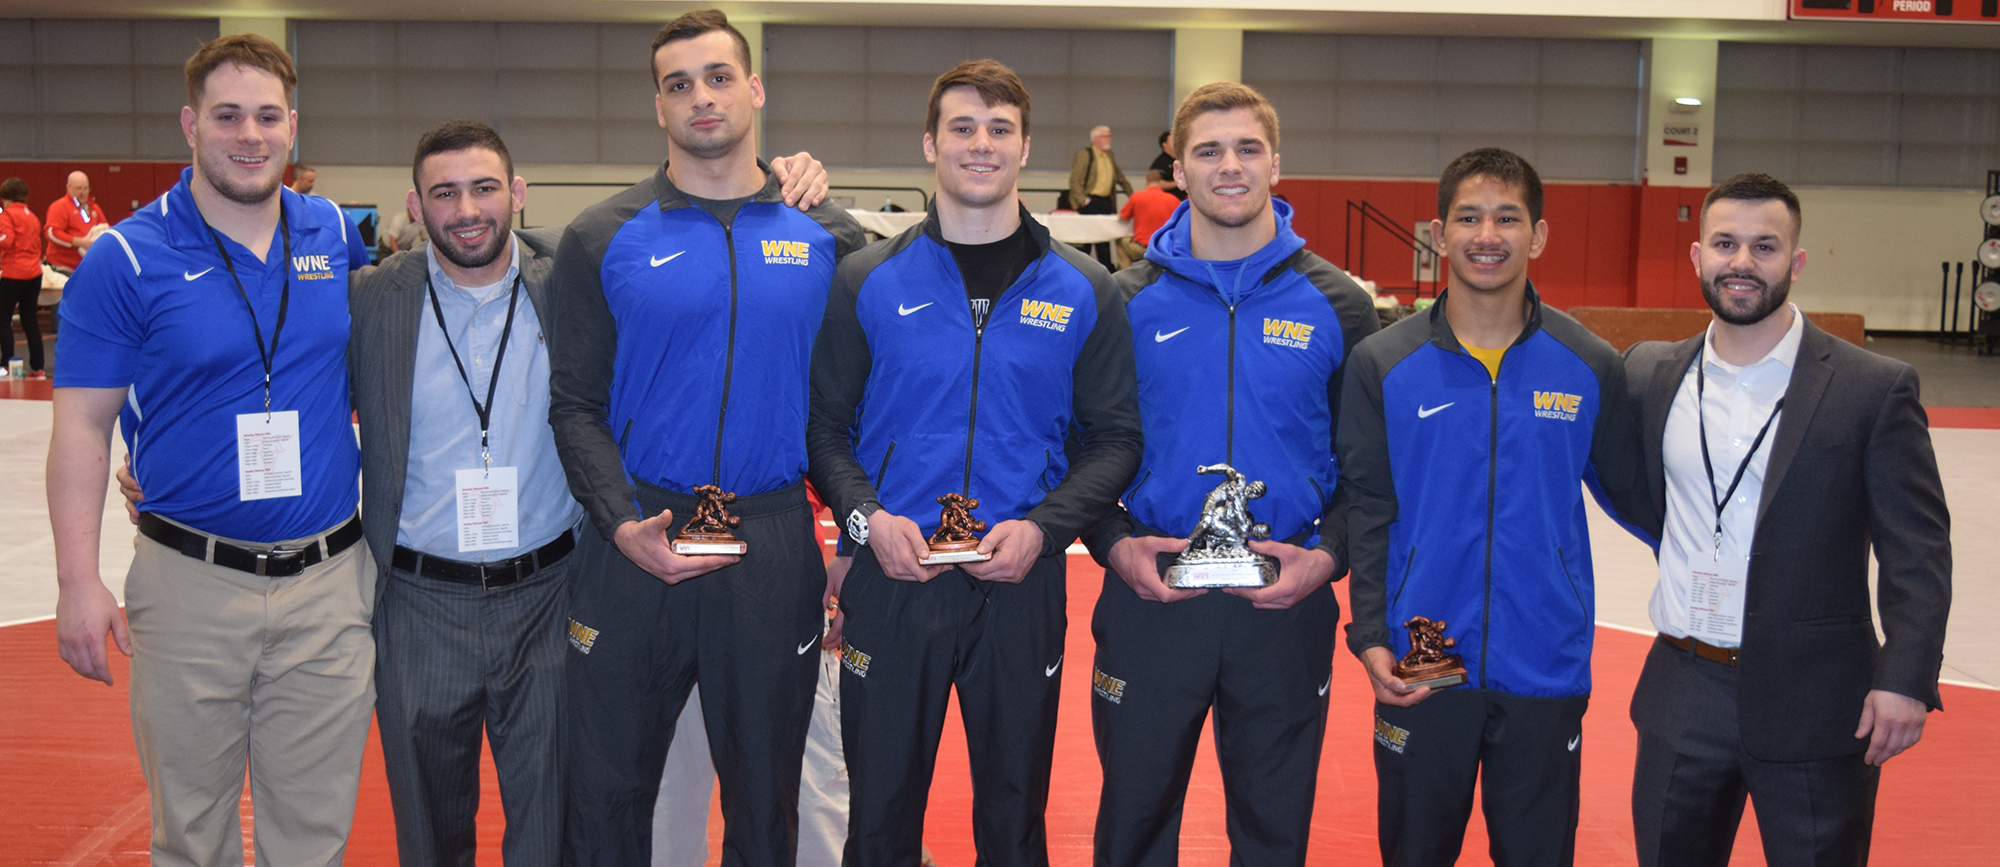 John Boyle qualified for the NCAA Championships, while Dom Liquori, Ryan Guers and Tim McLinden earned All-Northeast Region honors over the weekend at the NCAA Northeast Regional Championships at WPI.